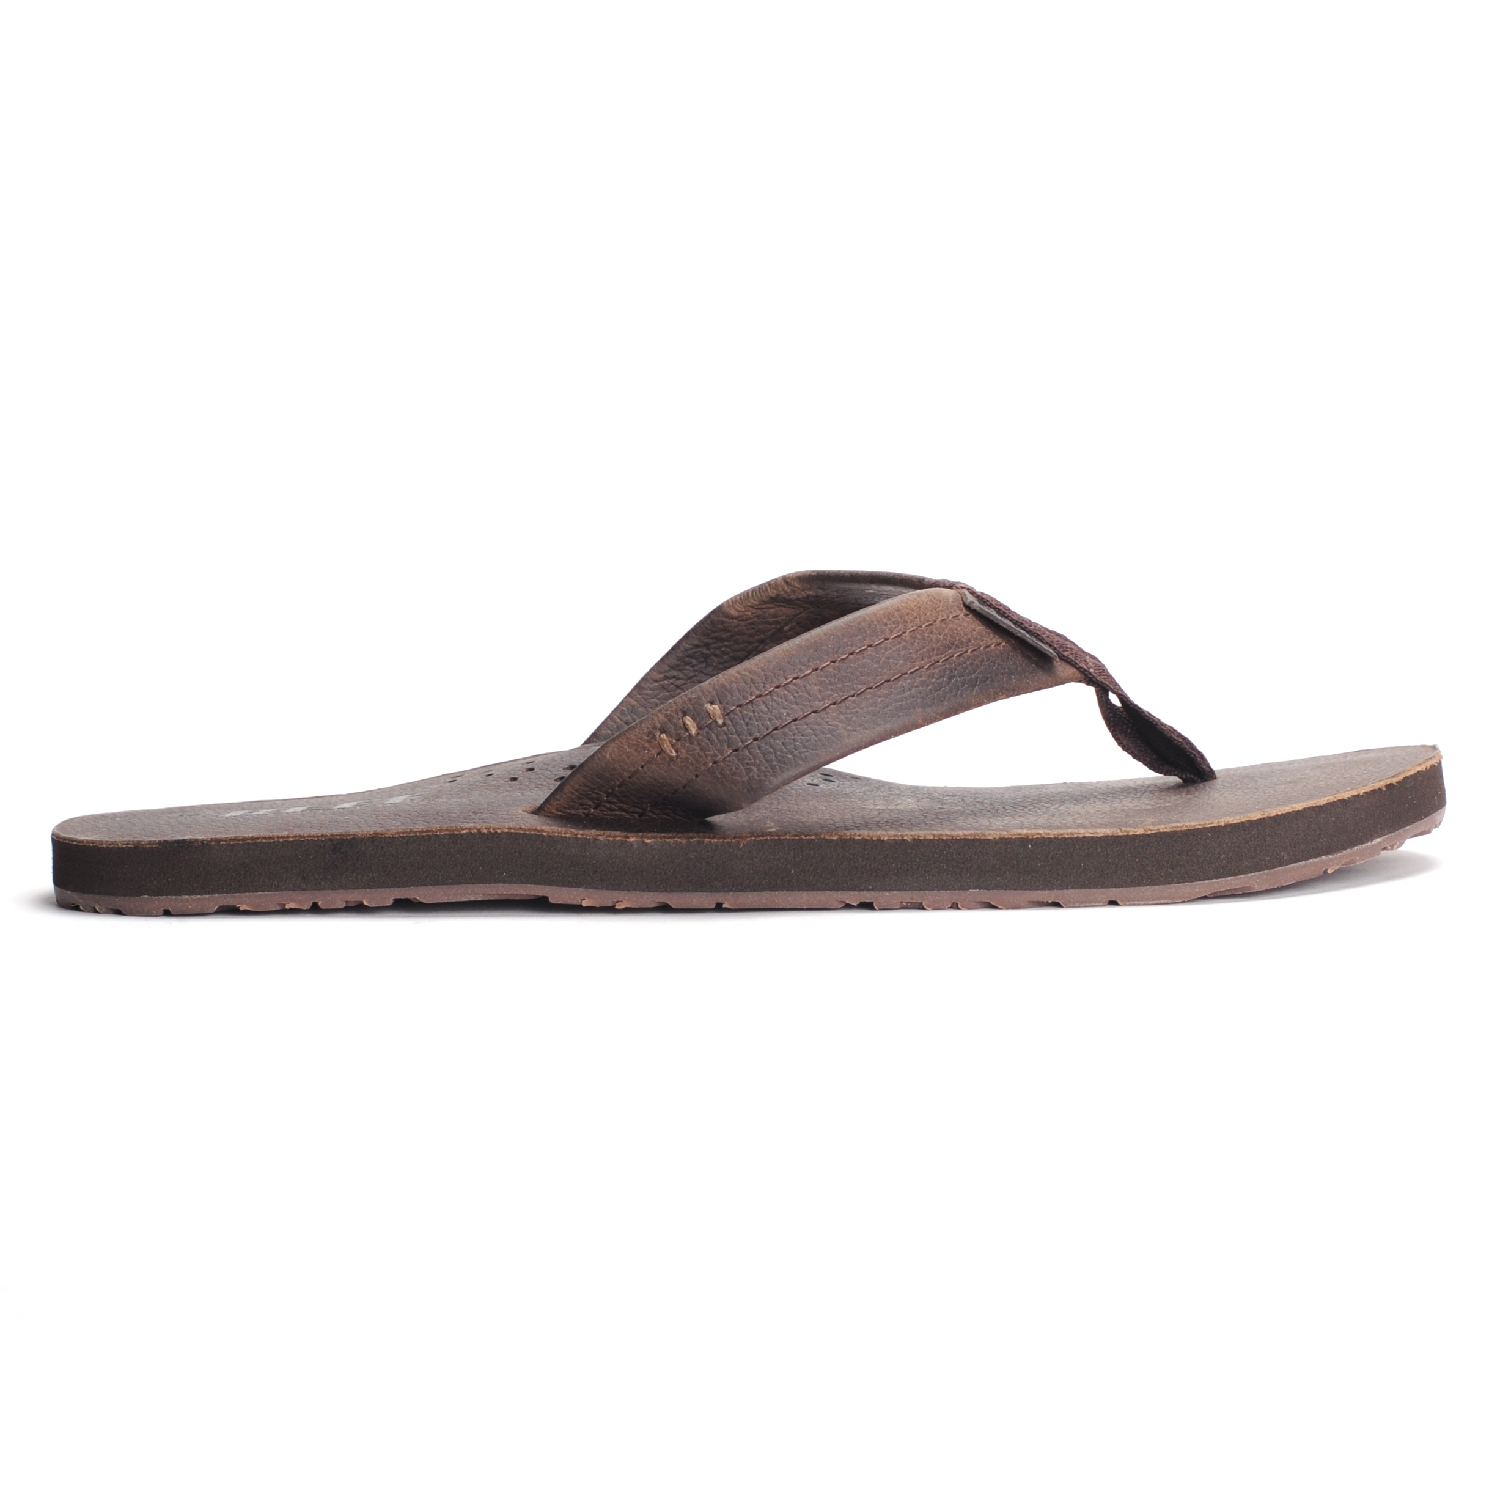 77a8a596e1 ... Chocolate Brown Flip Flops Men s Size 10 M 2611. About this product.  Picture 1 of 2 ...